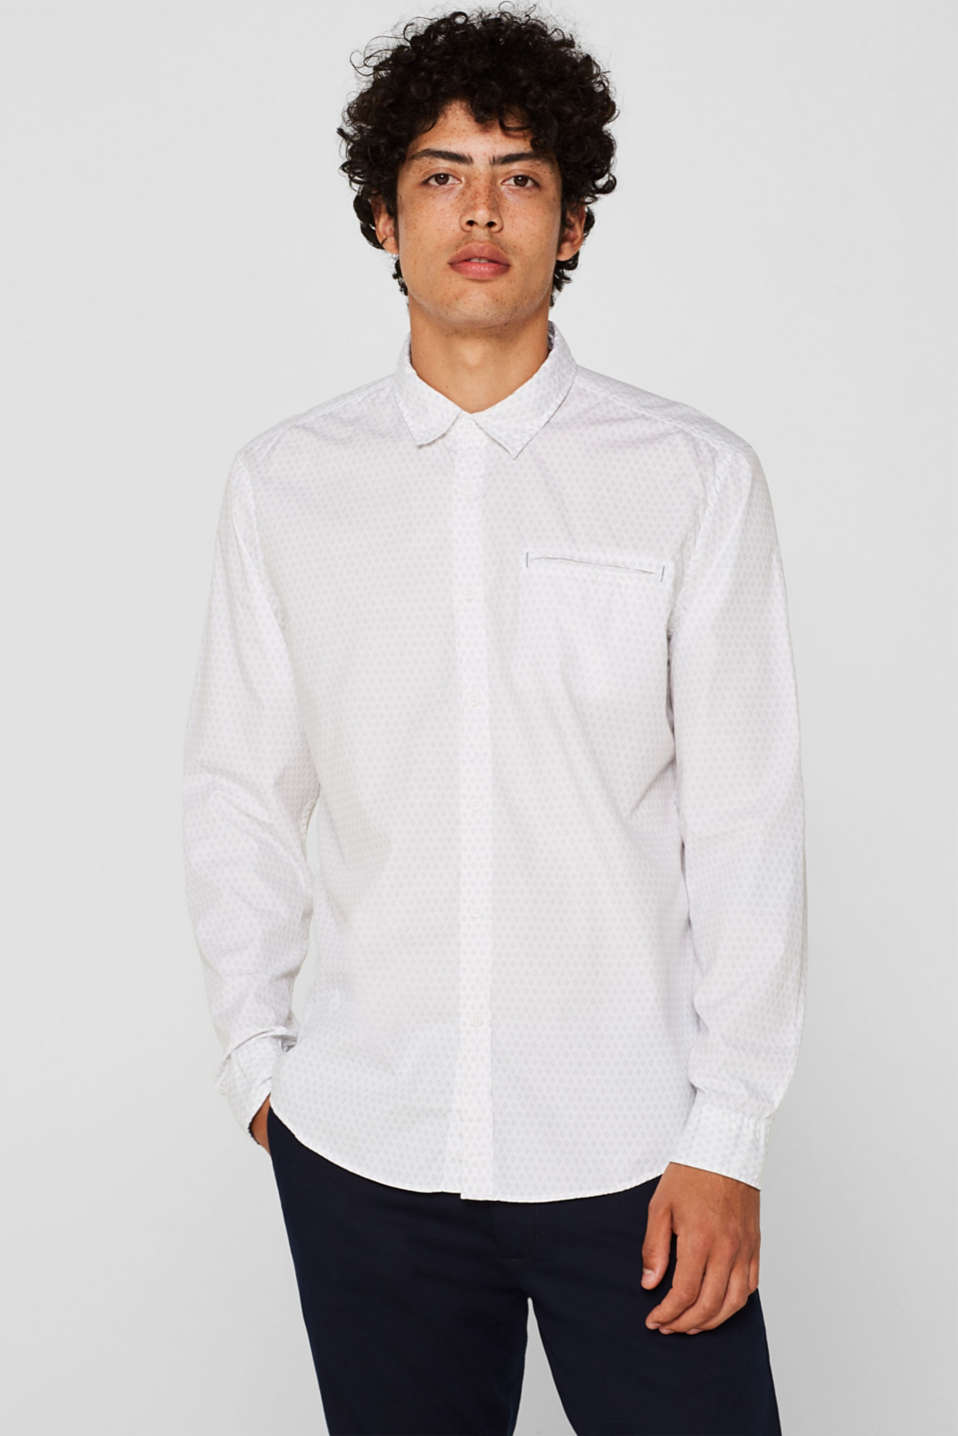 edc - Shirt with micro print, 100% cotton